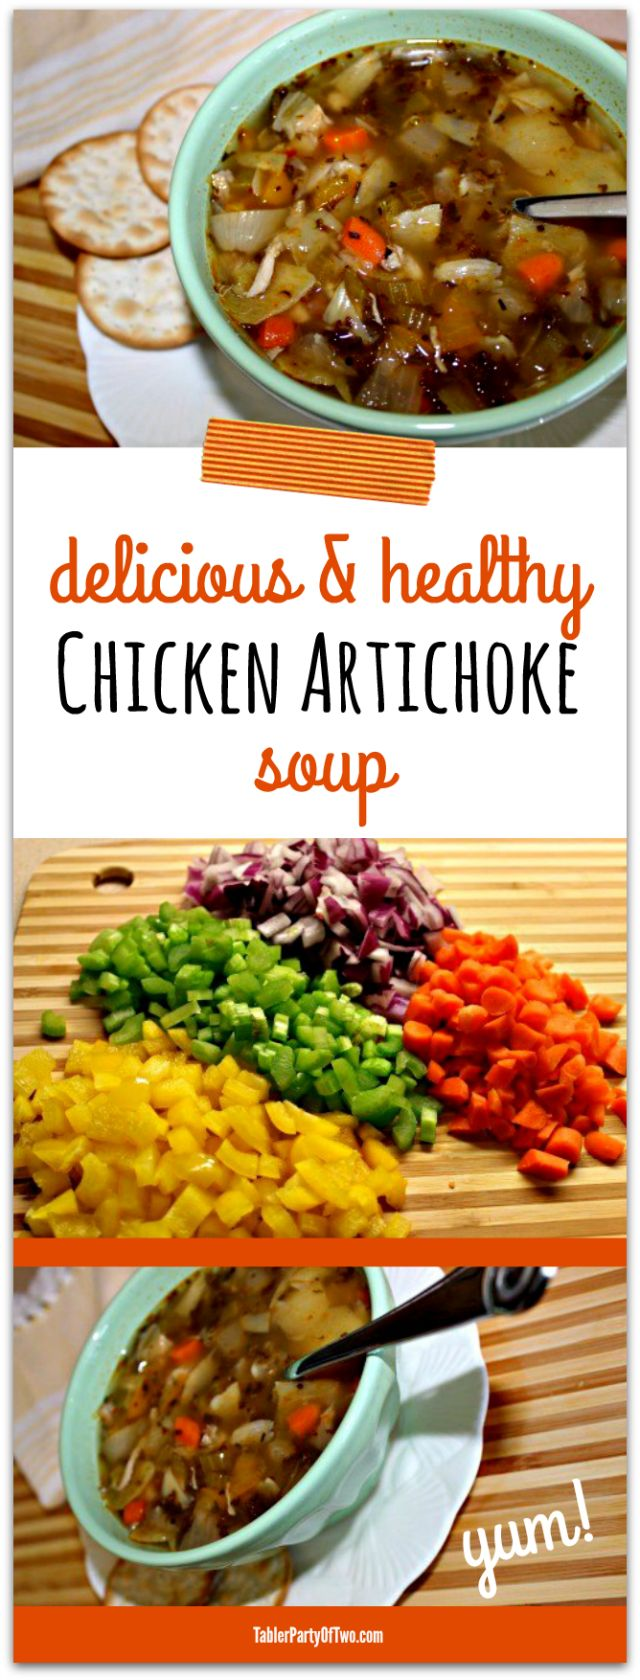 Delicious and healthy chicken artichoke soup... so amazingly yummy for cold winter days!